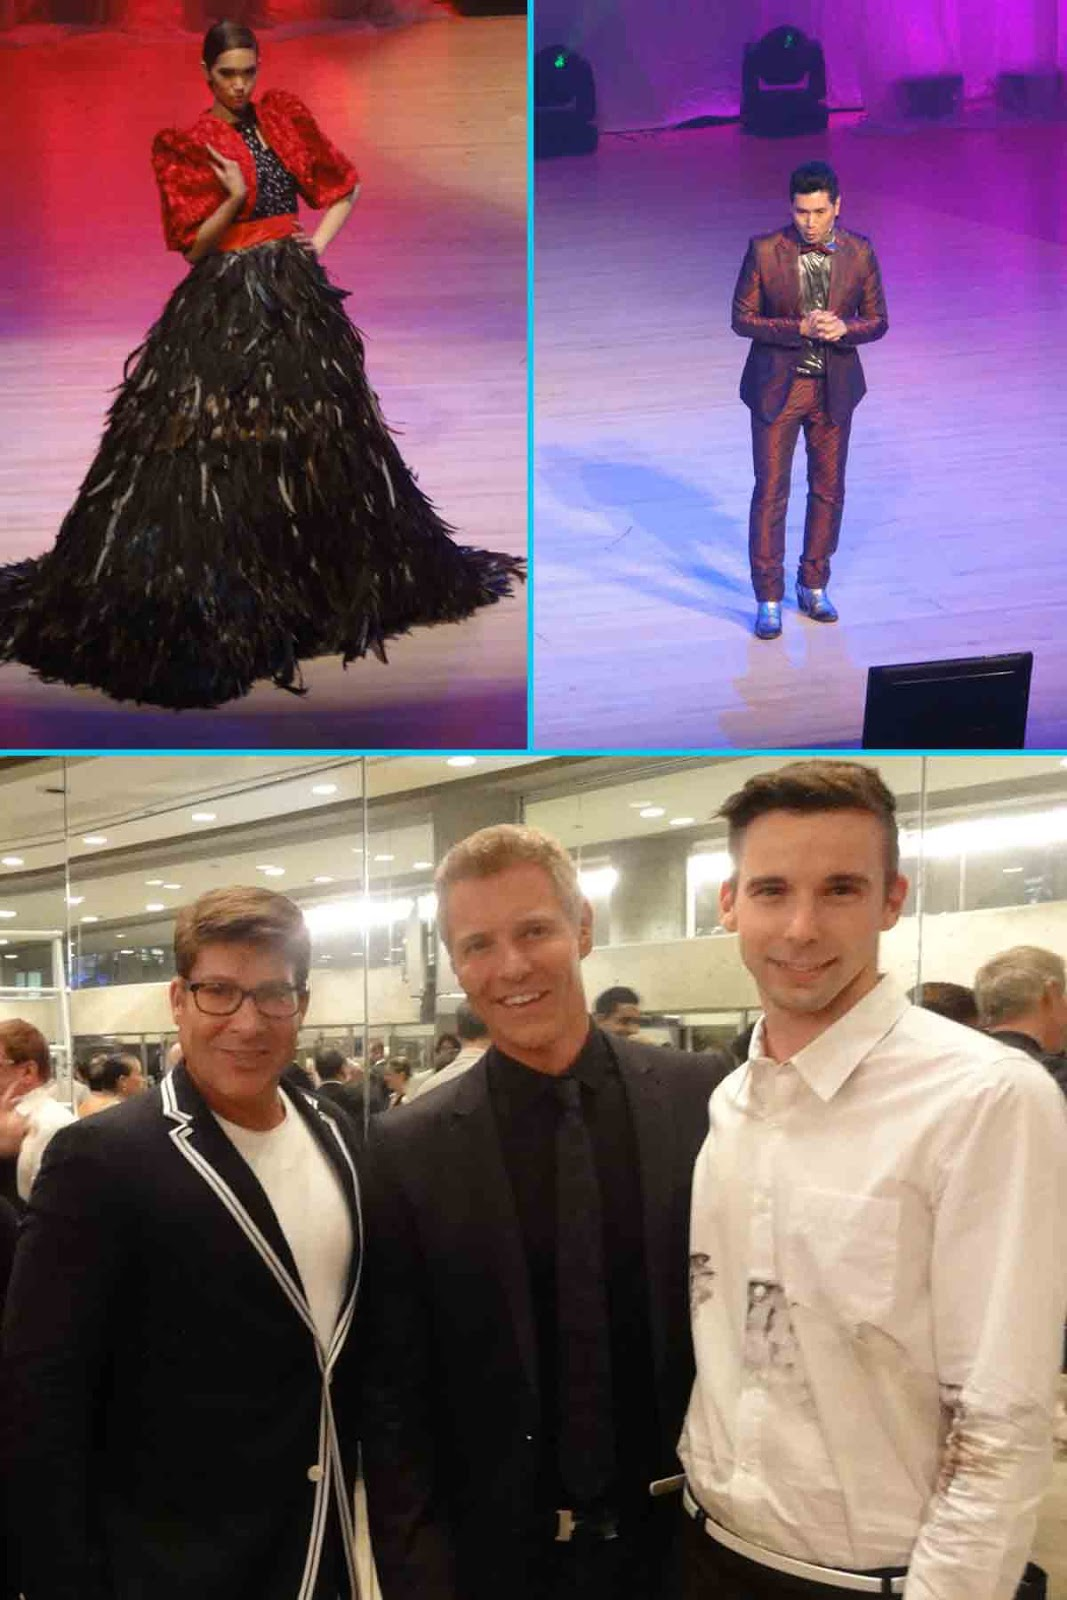 Chris hyndman hair piece - Local Celebrities Such As Steven Sabados And Chris Hyndman Of The Cbc S Steven And Chris Show Were In Attendance And Greeted Their Friends And Fans In